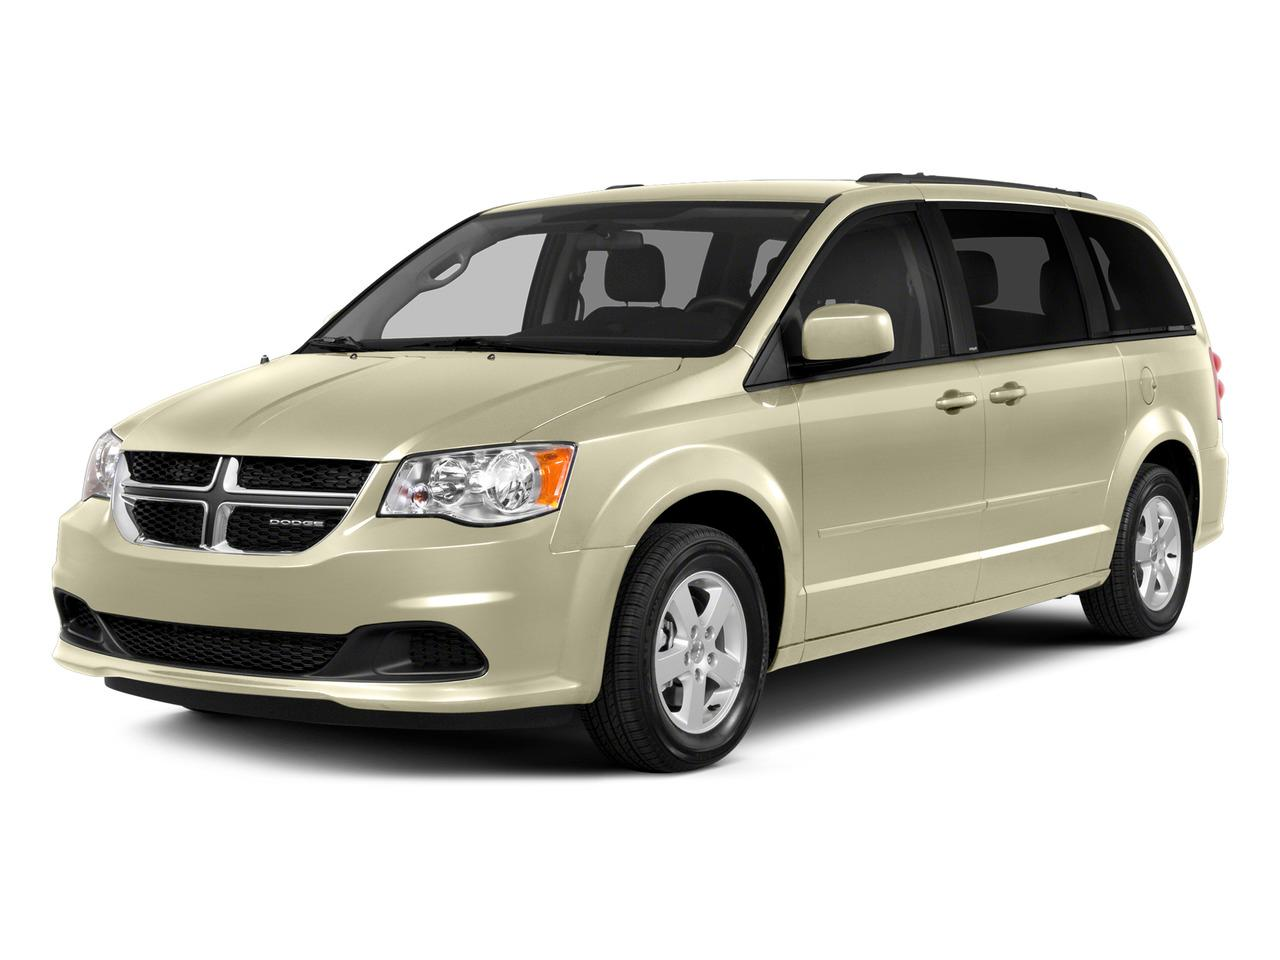 2015 Dodge Grand Caravan Vehicle Photo in Henderson, NV 89014